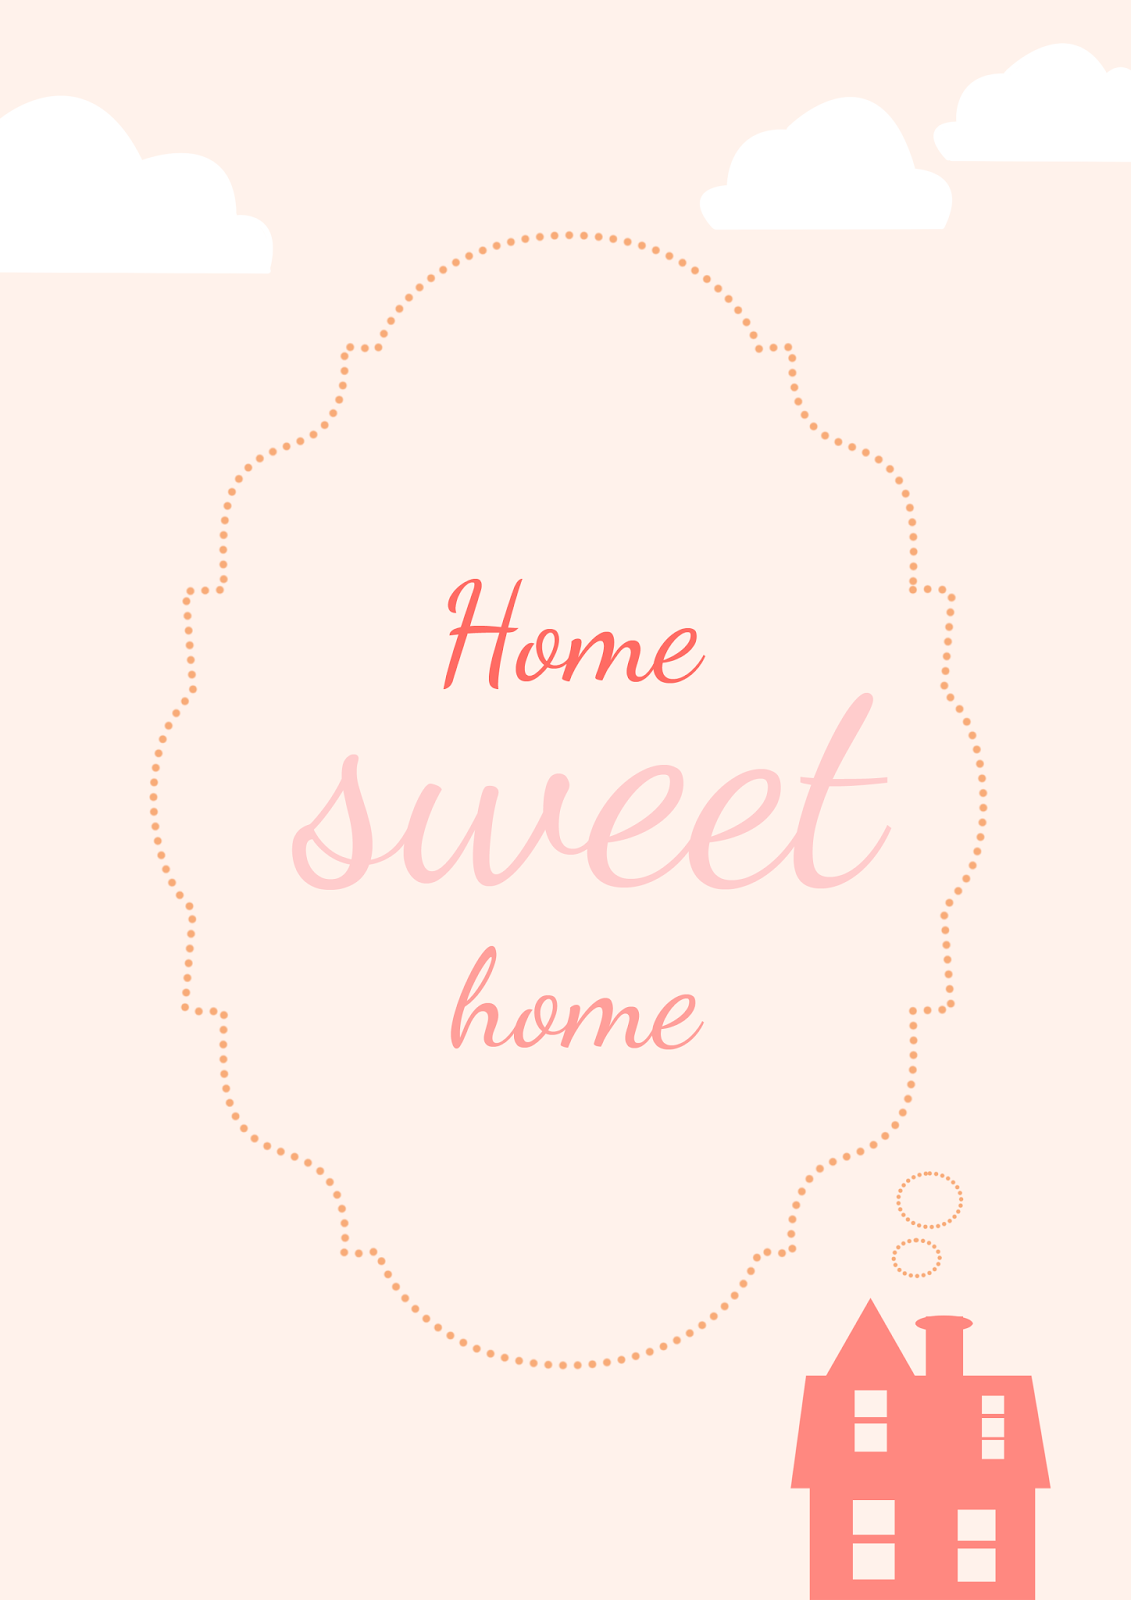 http://alicemoreau-creations.com/wp-content/themes/time-via-wp-themes-pro/img-site/carte-HOMESWEETHOME.pdf